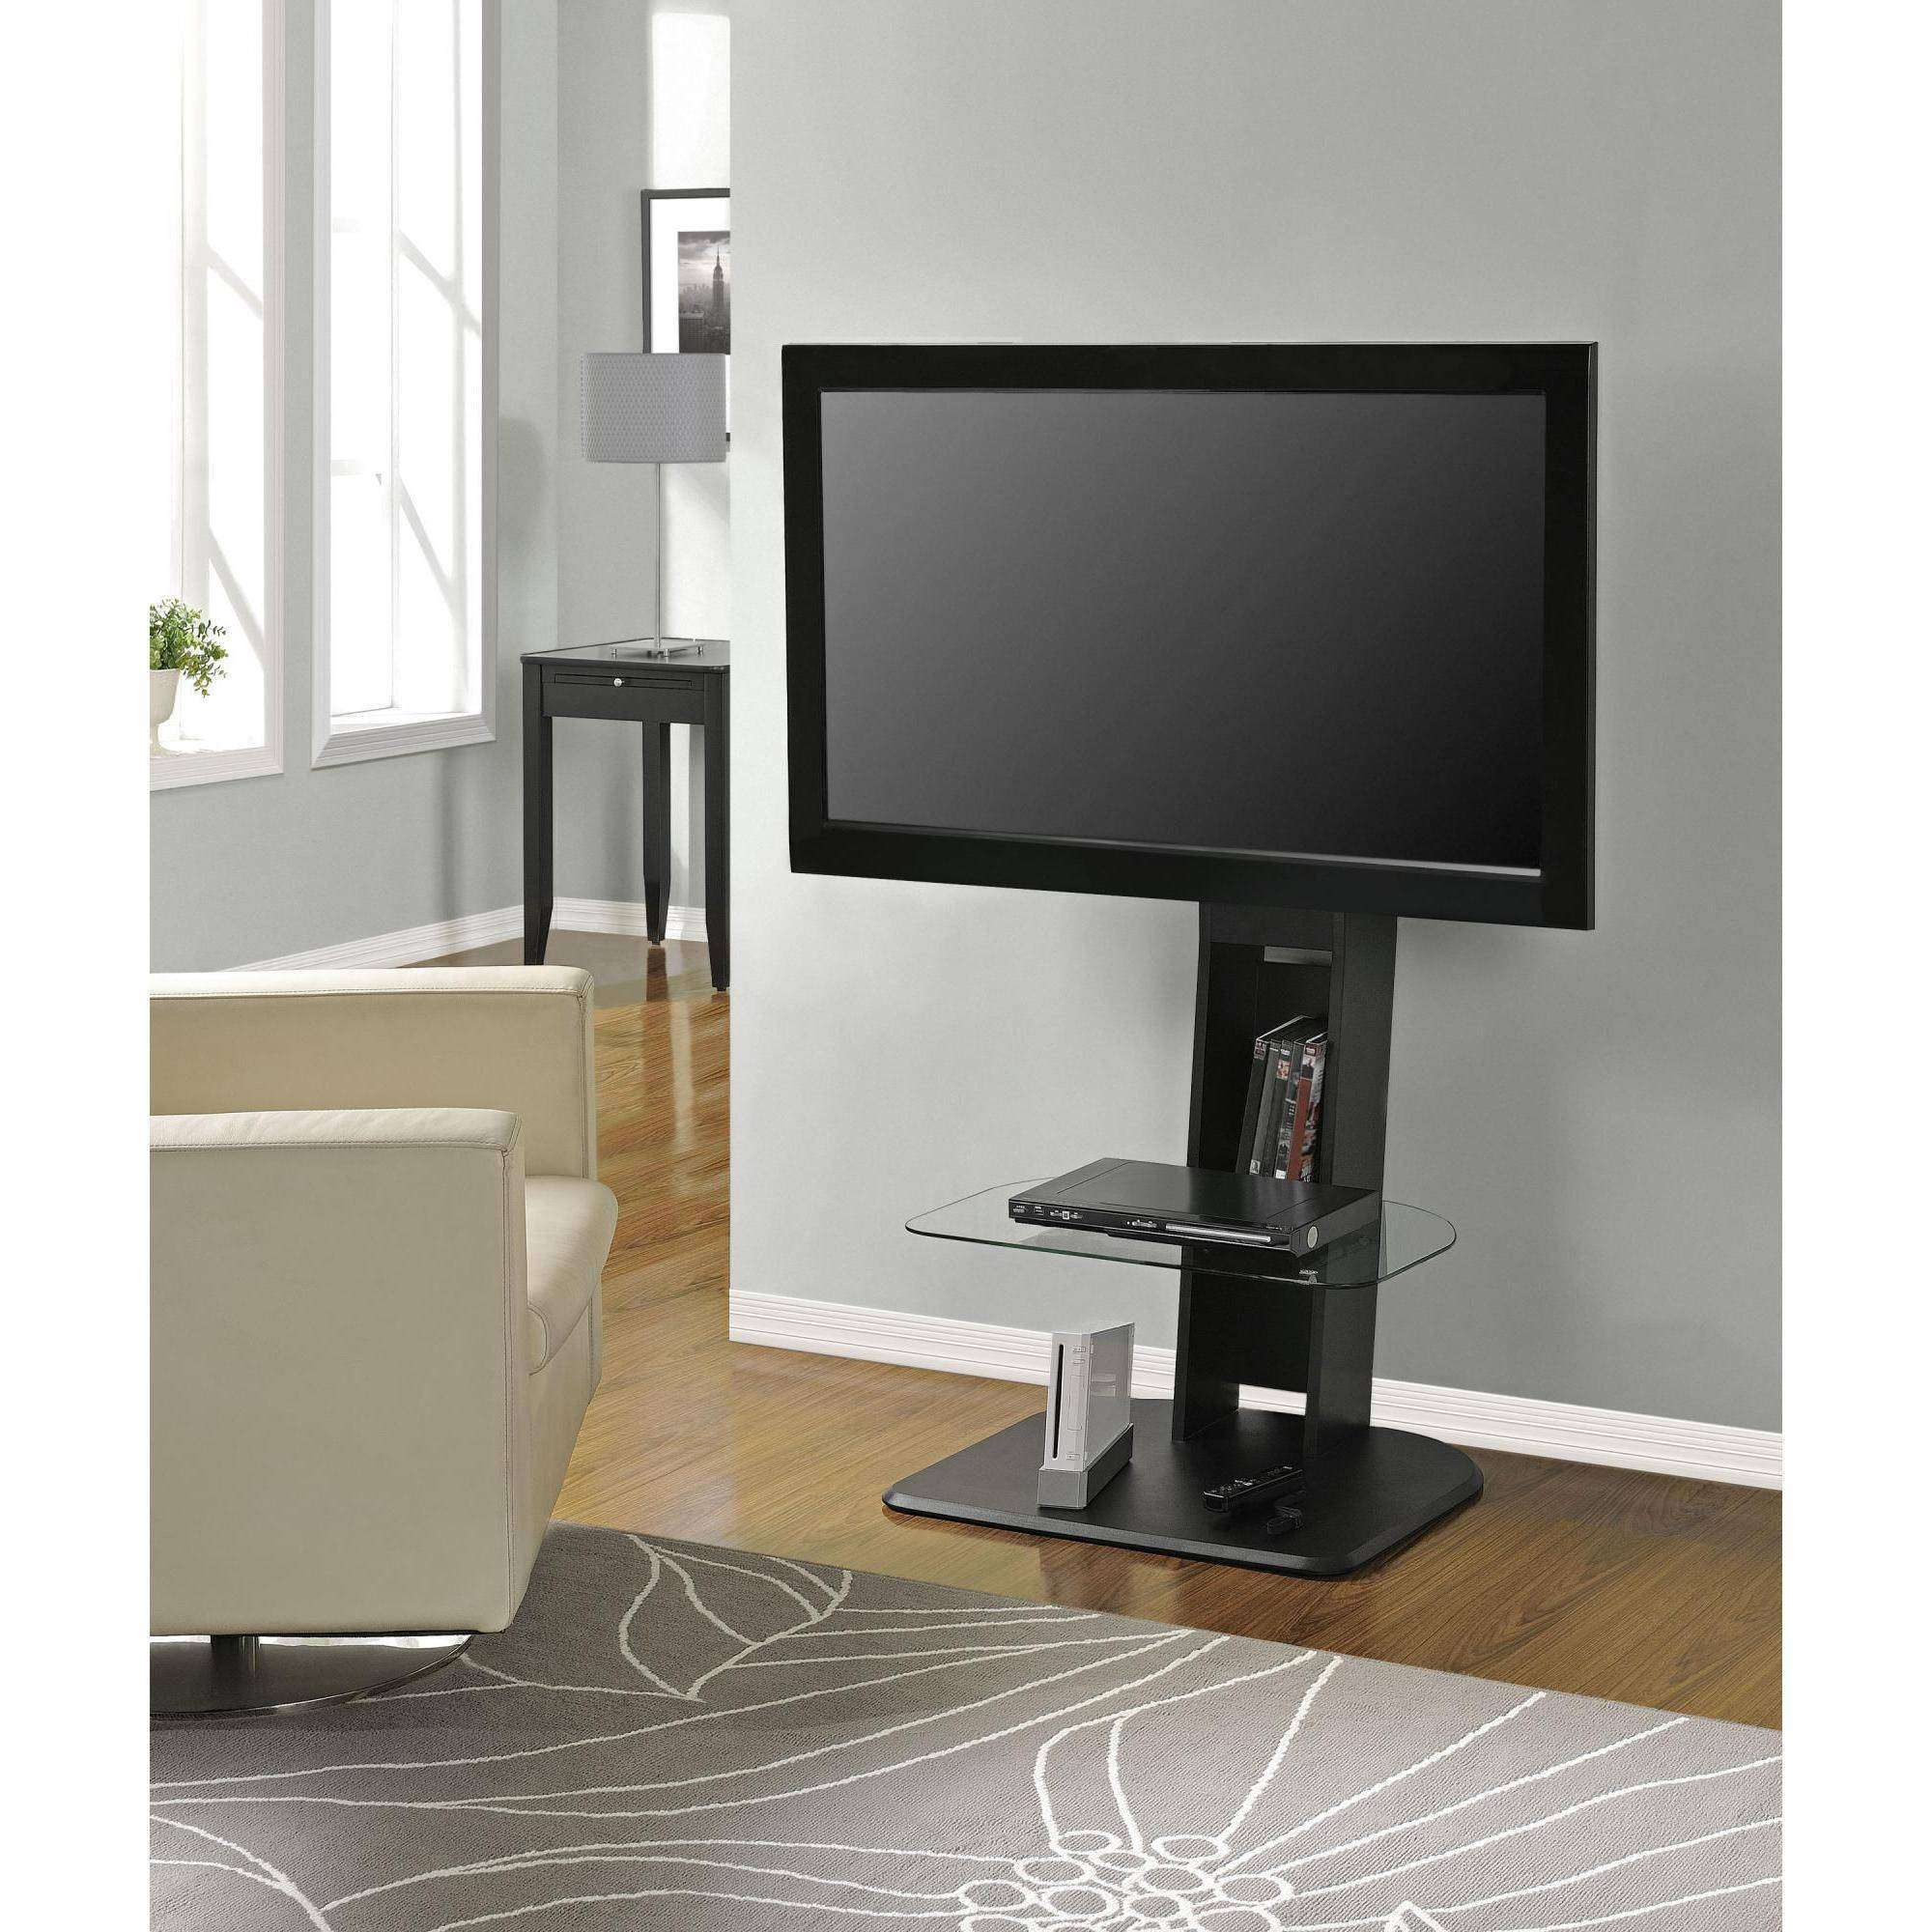 Tv Stands & Entertainment Centers – Walmart Intended For Tv Stands For Small Spaces (View 12 of 15)